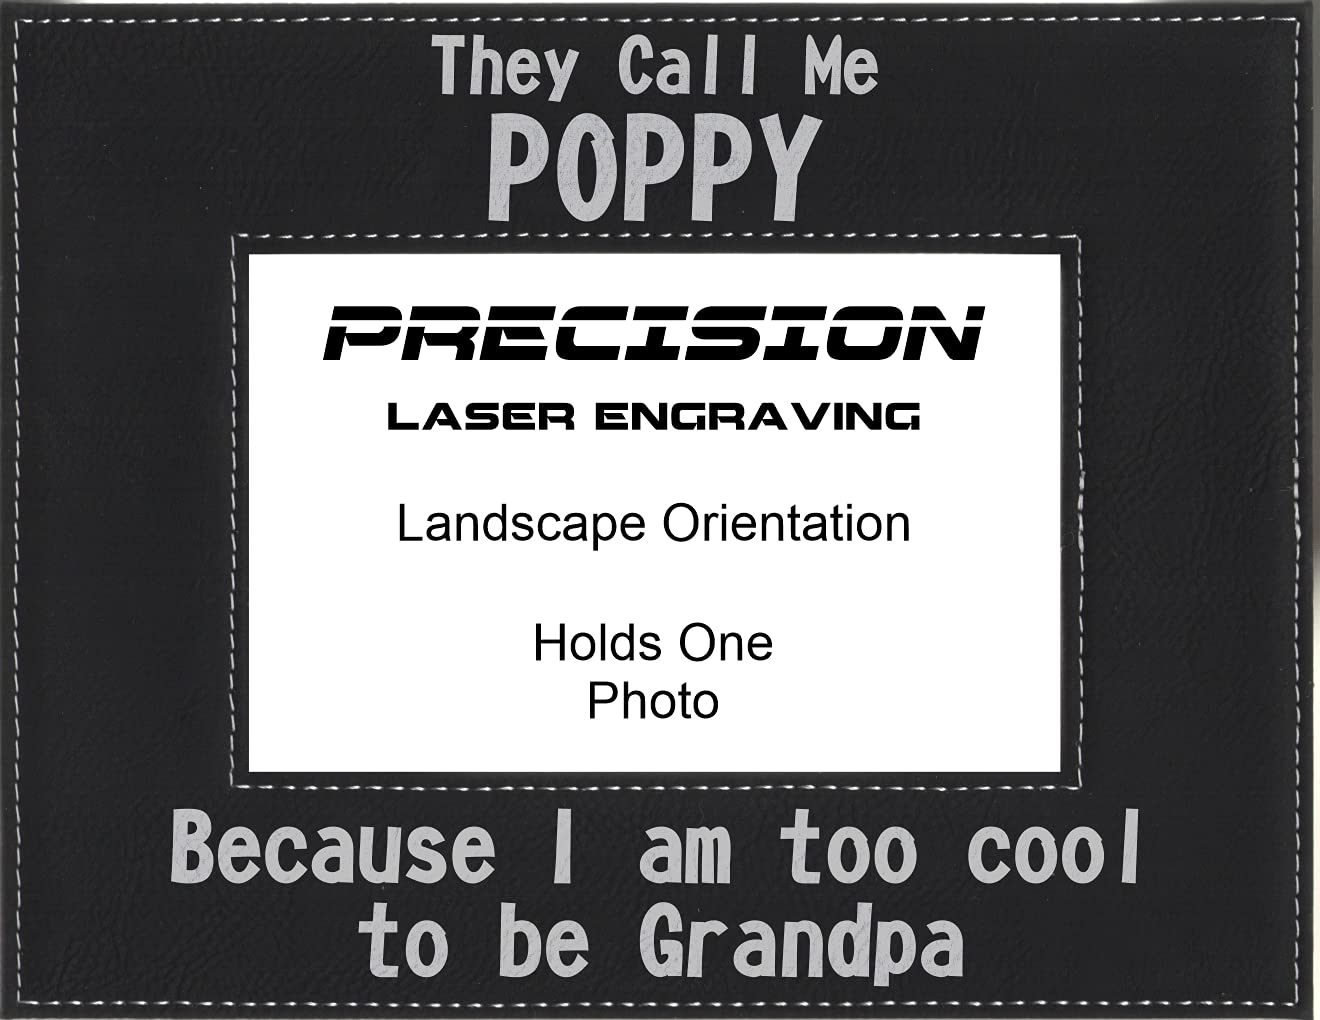 Nashville-Davidson Mall Grandpa Poppy Gift Call Me for Too L cool Large discharge sale Engraved